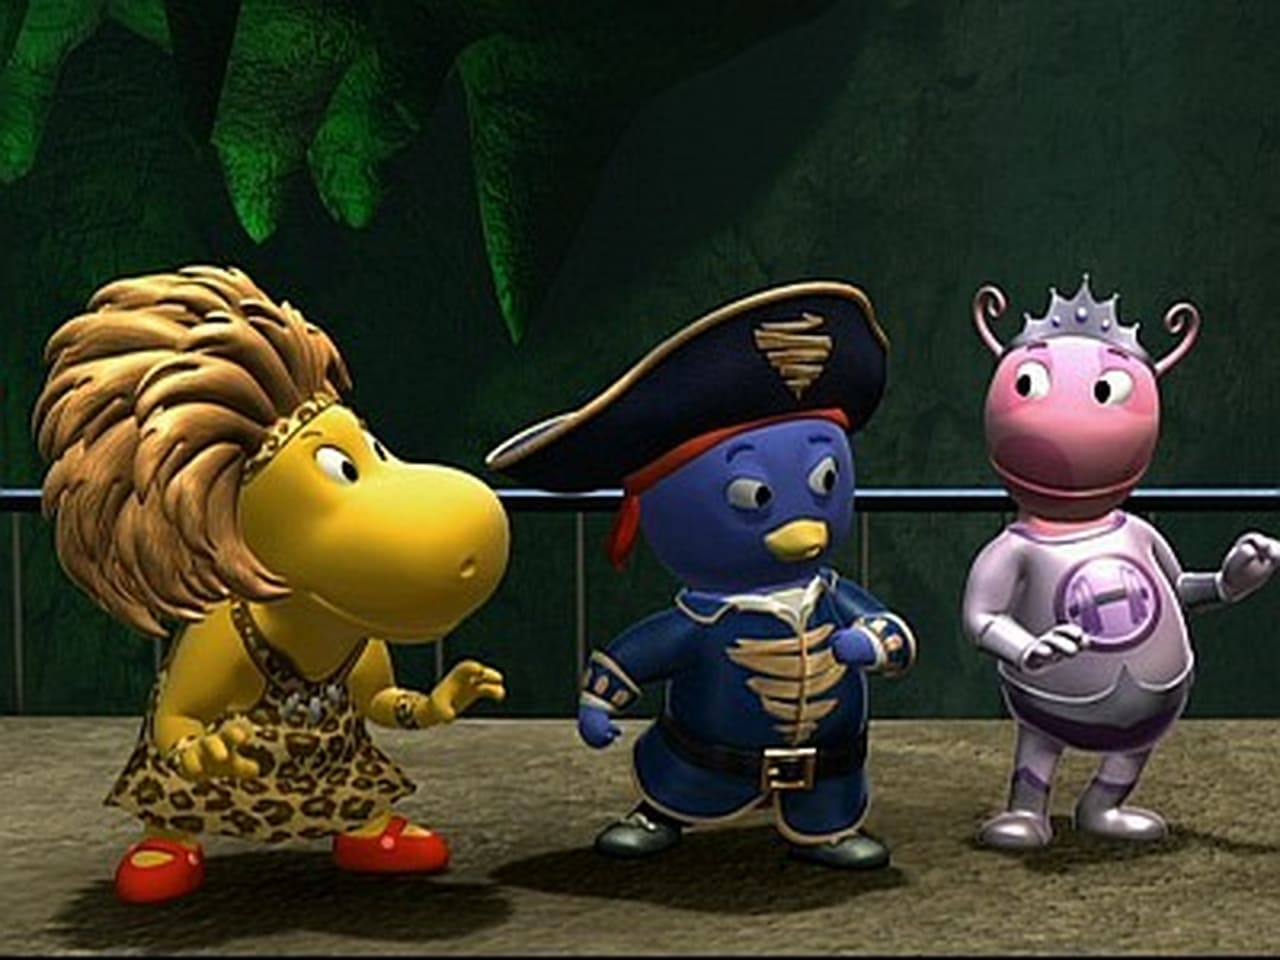 The Backyardigans Episode: Super Team Awesome